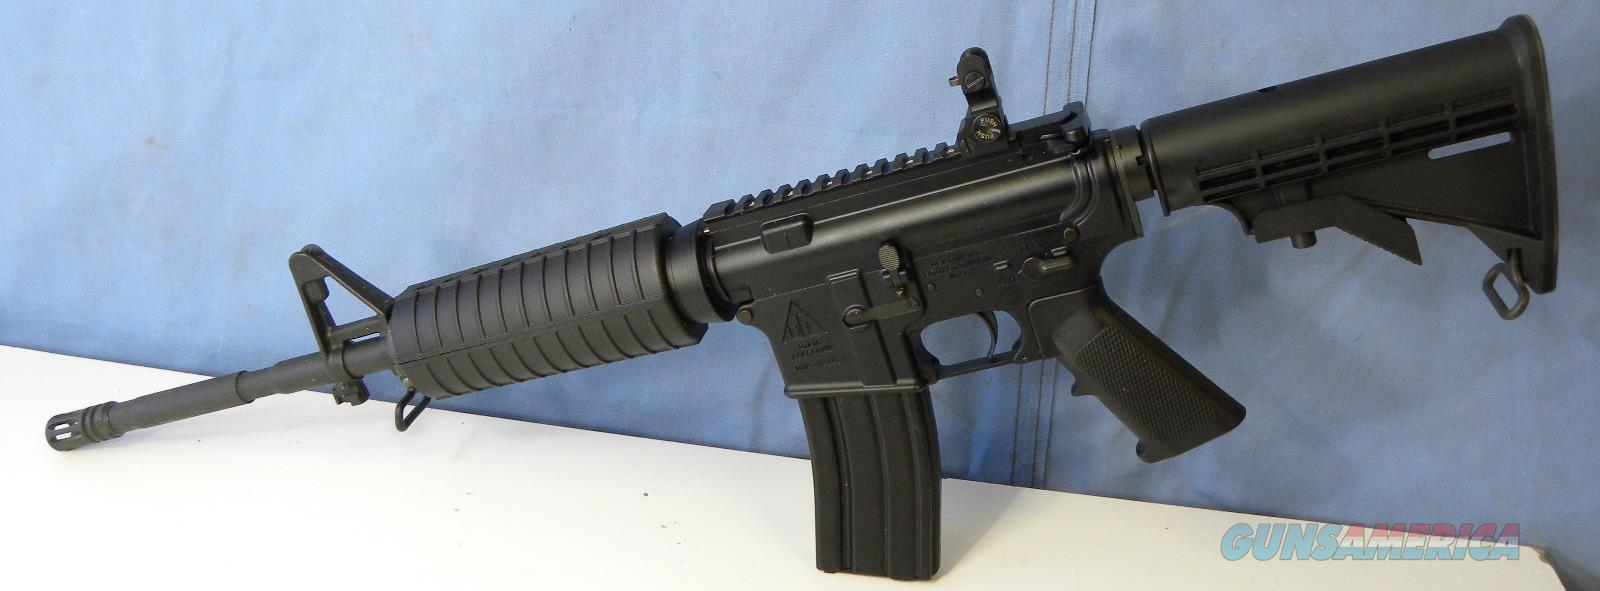 Delton Extreme 316   Guns > Rifles > AR-15 Rifles - Small Manufacturers > Complete Rifle